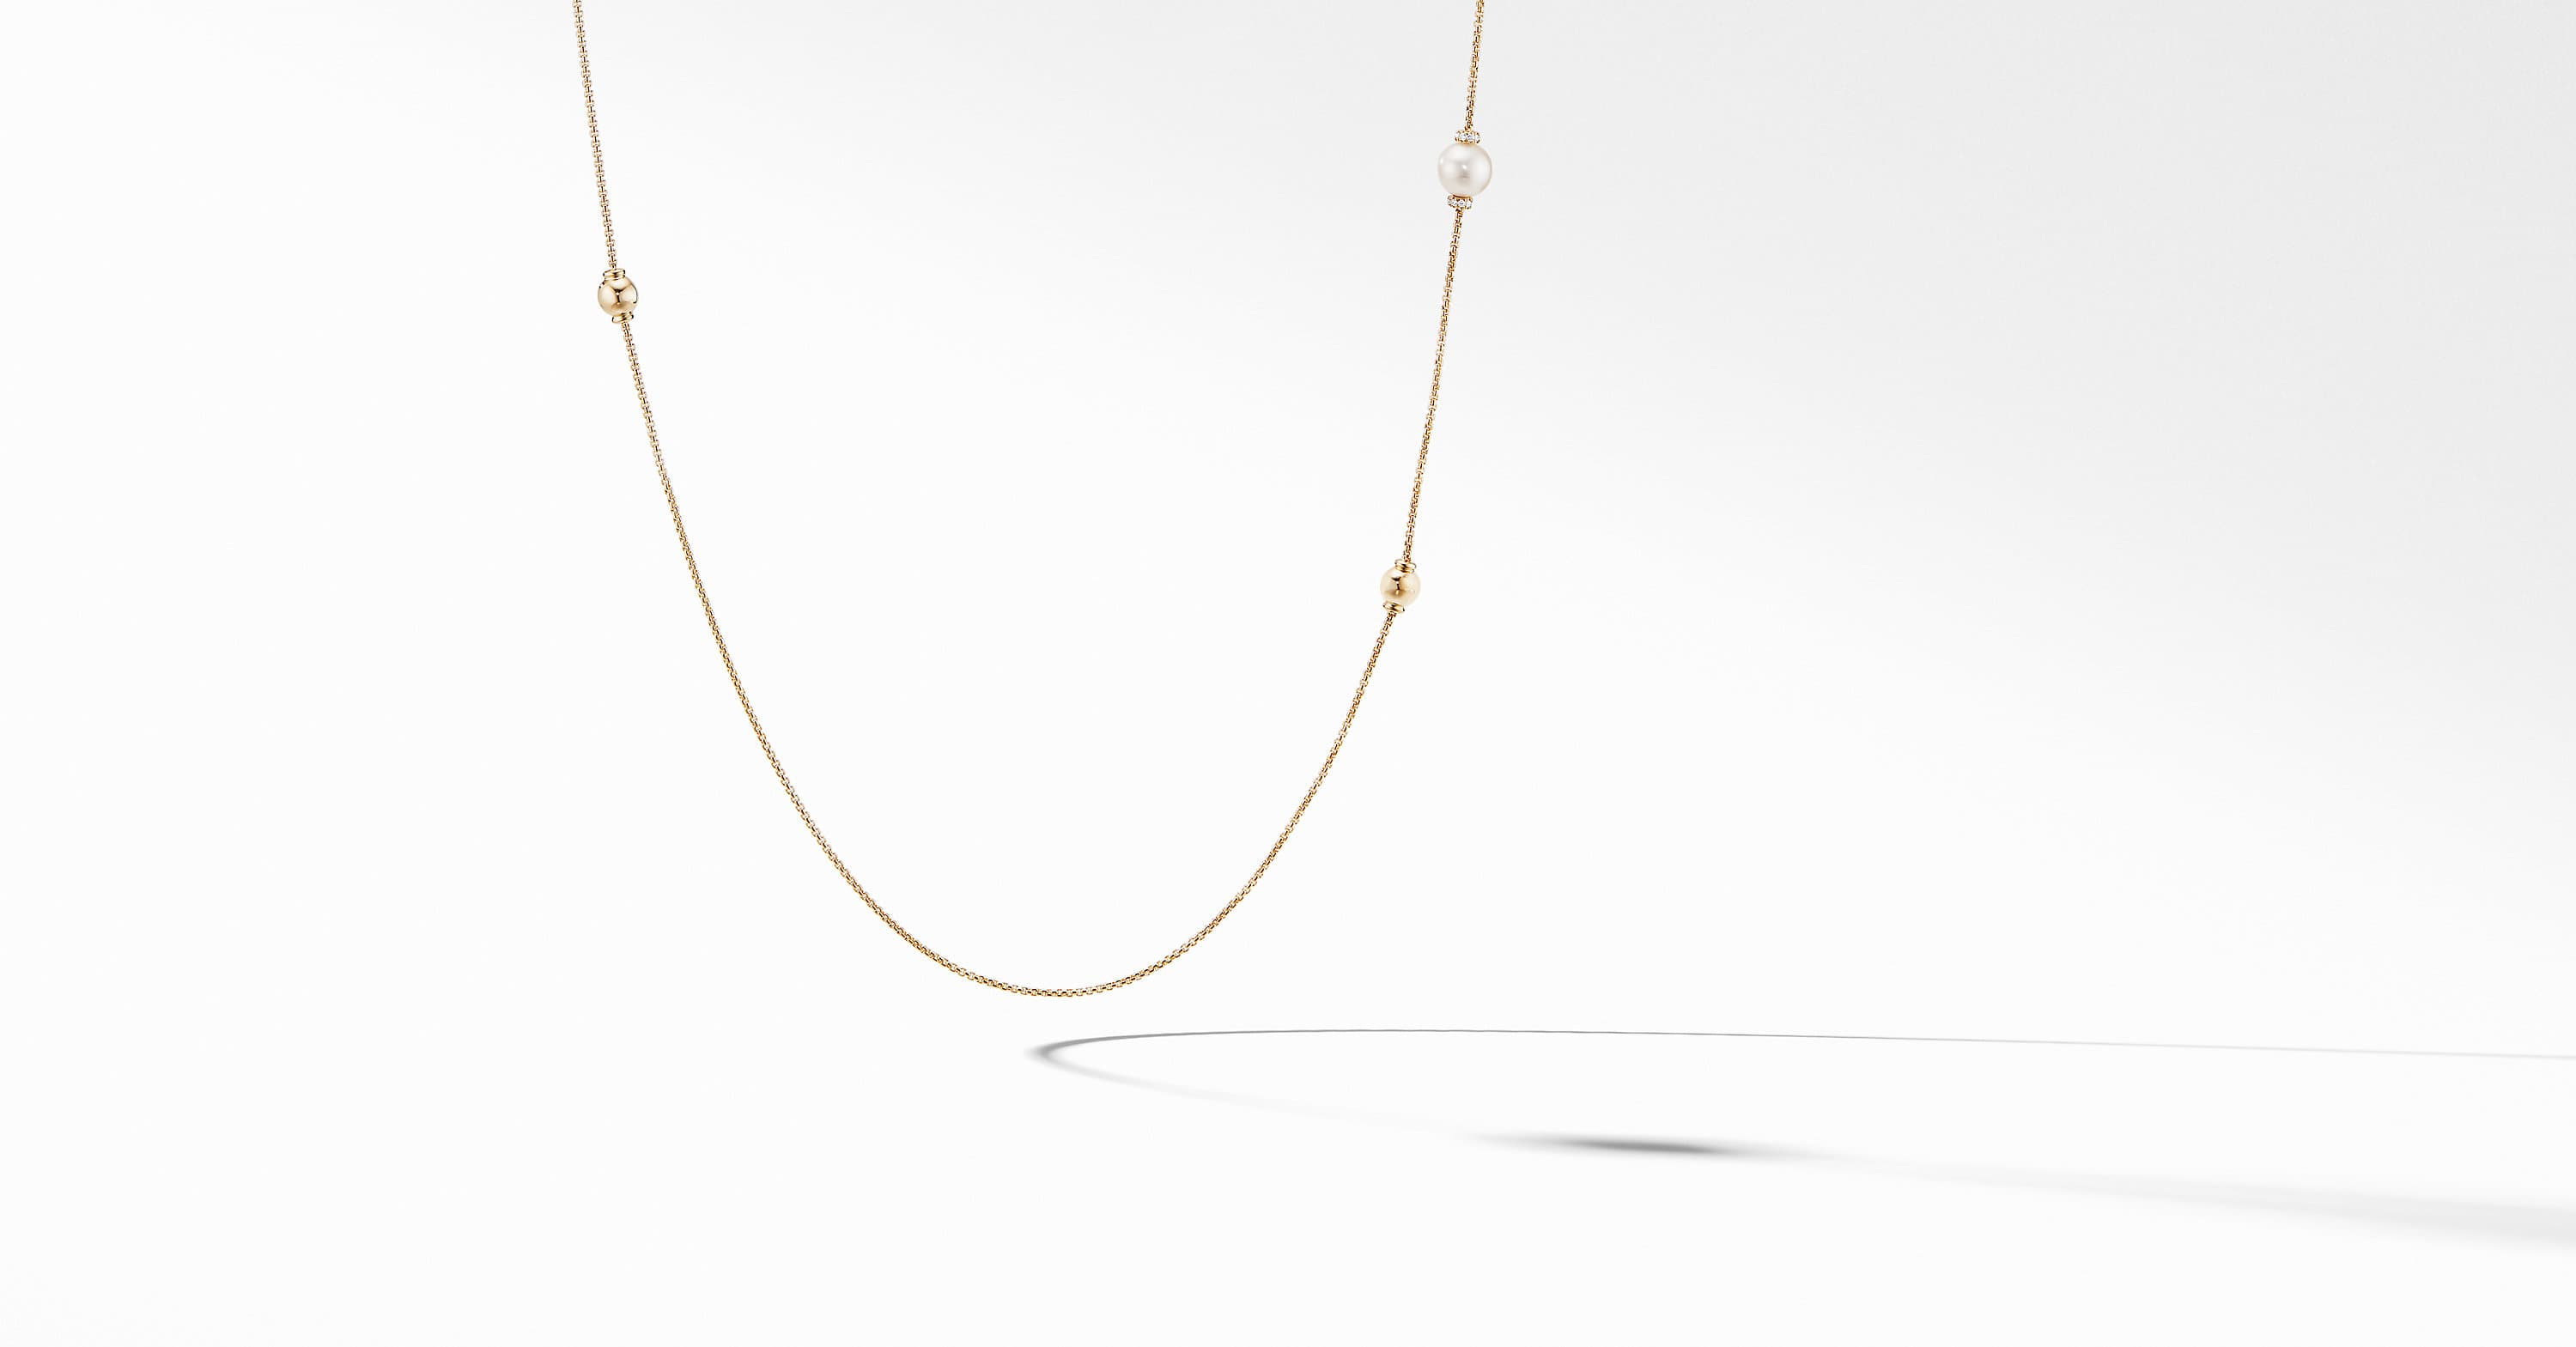 Solari Station Necklace in 18K Yellow Gold with Diamonds